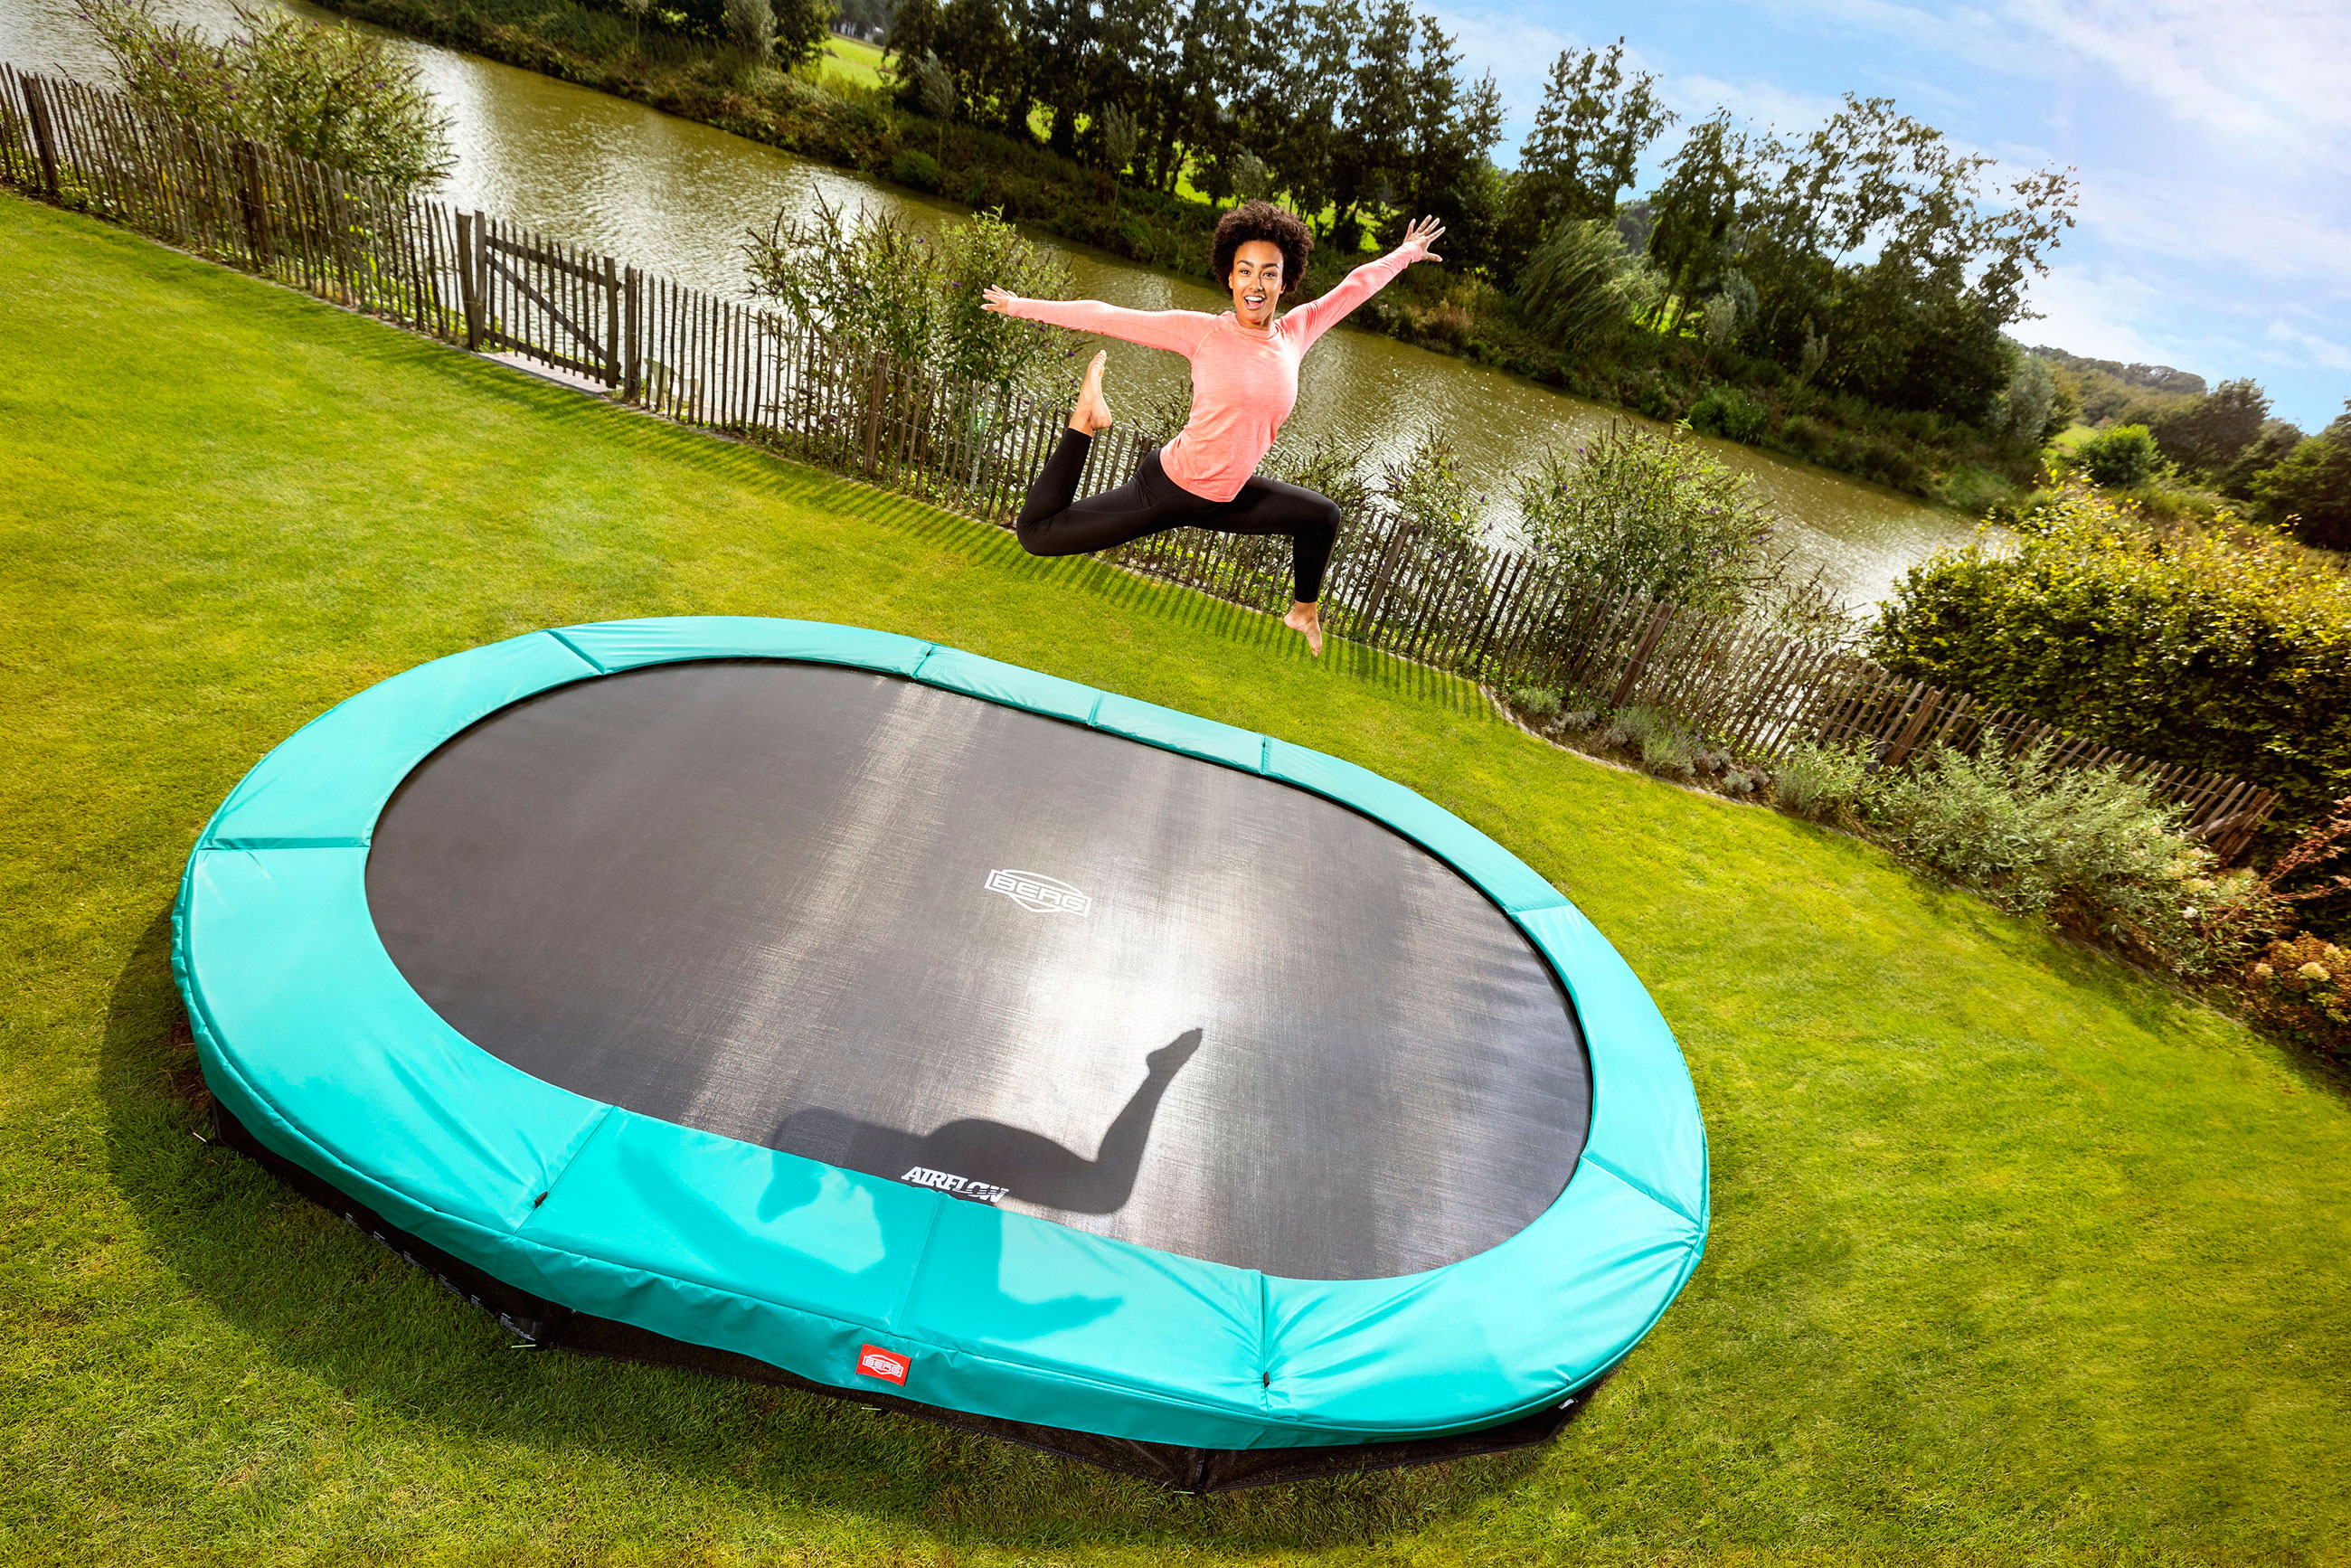 Trampolin Grand Champion InGround Sports grün 350x250cm BERG toys Bild 5